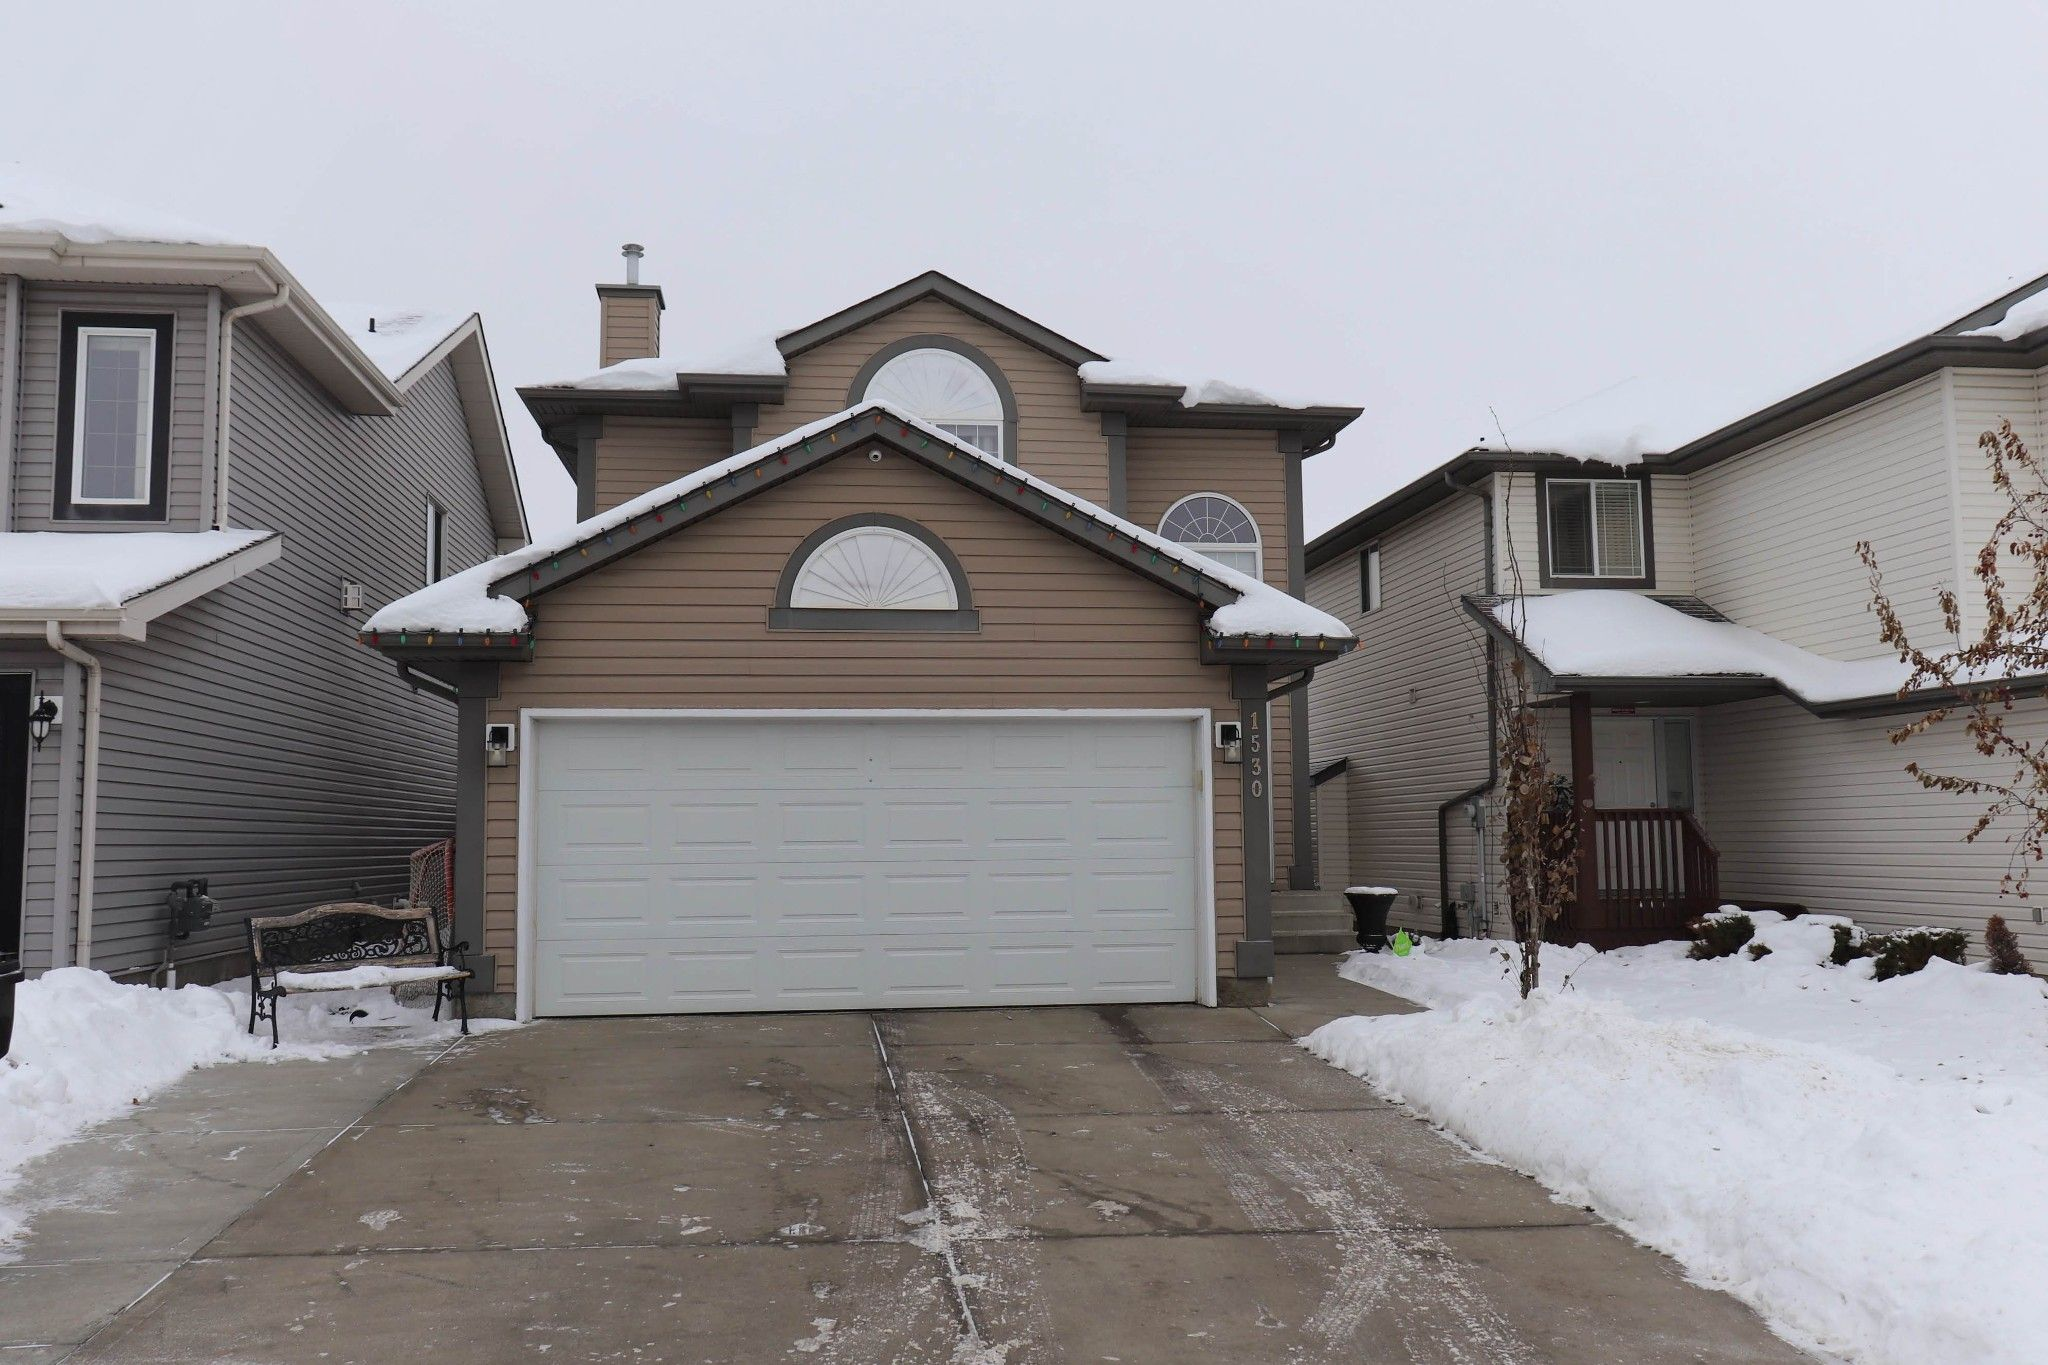 Main Photo: 1530 37b Ave in Edmonton: House for sale : MLS®# E4228182